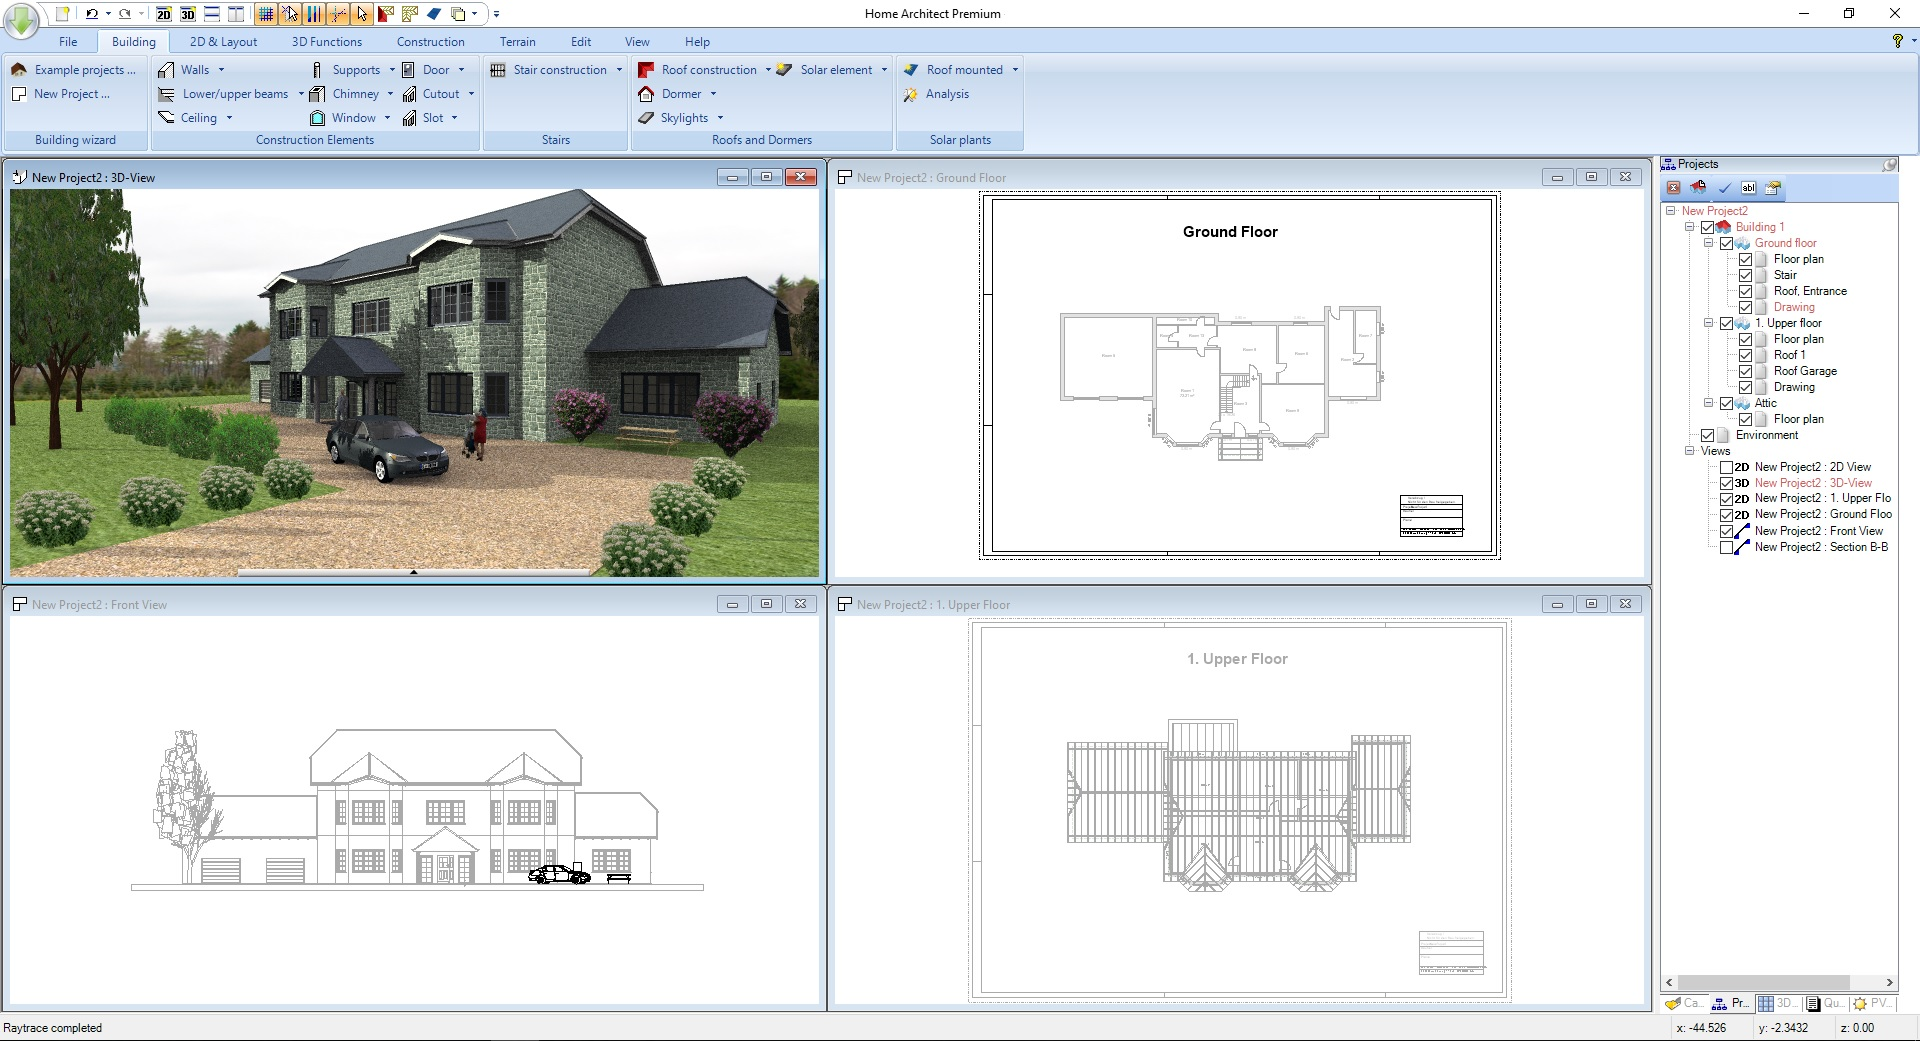 Home Architect - Design your floor plans in 3D - SteamStat.ru